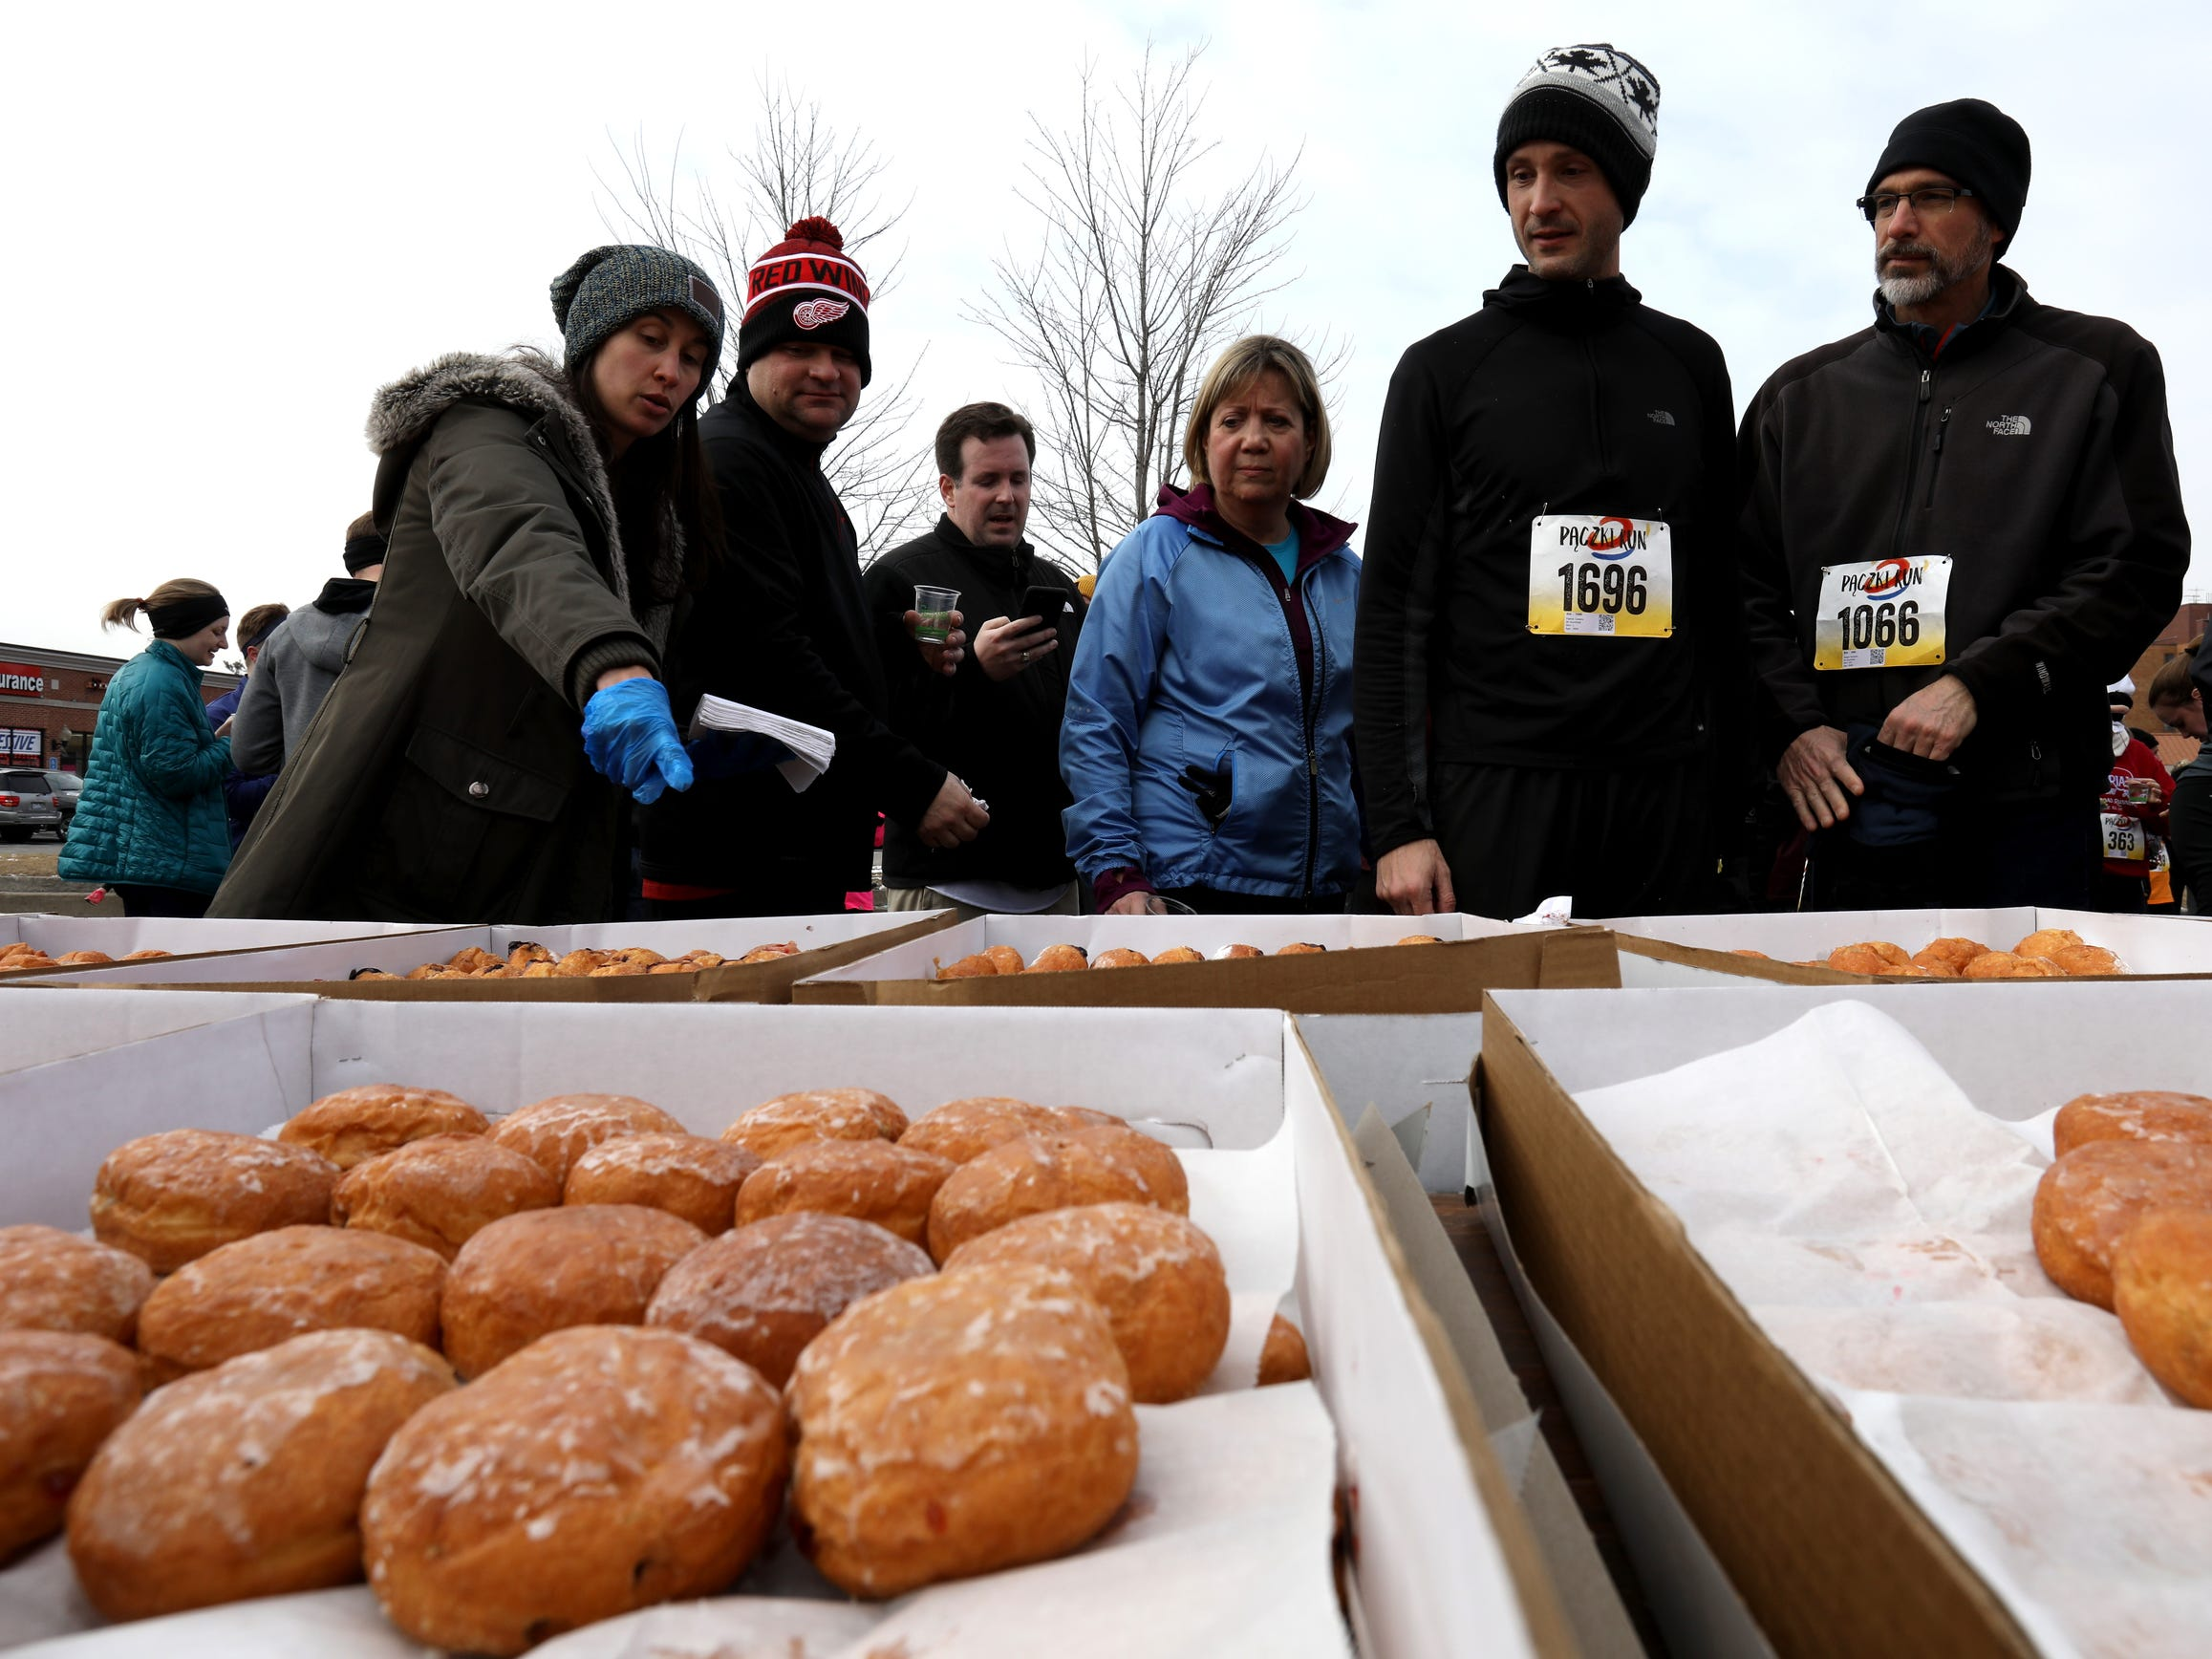 Runners look over and talk about some of the 7 variety kinds of Paczki they could choose from after they finished the 2019 Paczki 5K run through the streets and neighborhoods of downtown Hamtramck on Saturday, March 2, 2019. Two hundred and ten dozen Paczki were made for the 5k run on Saturday.